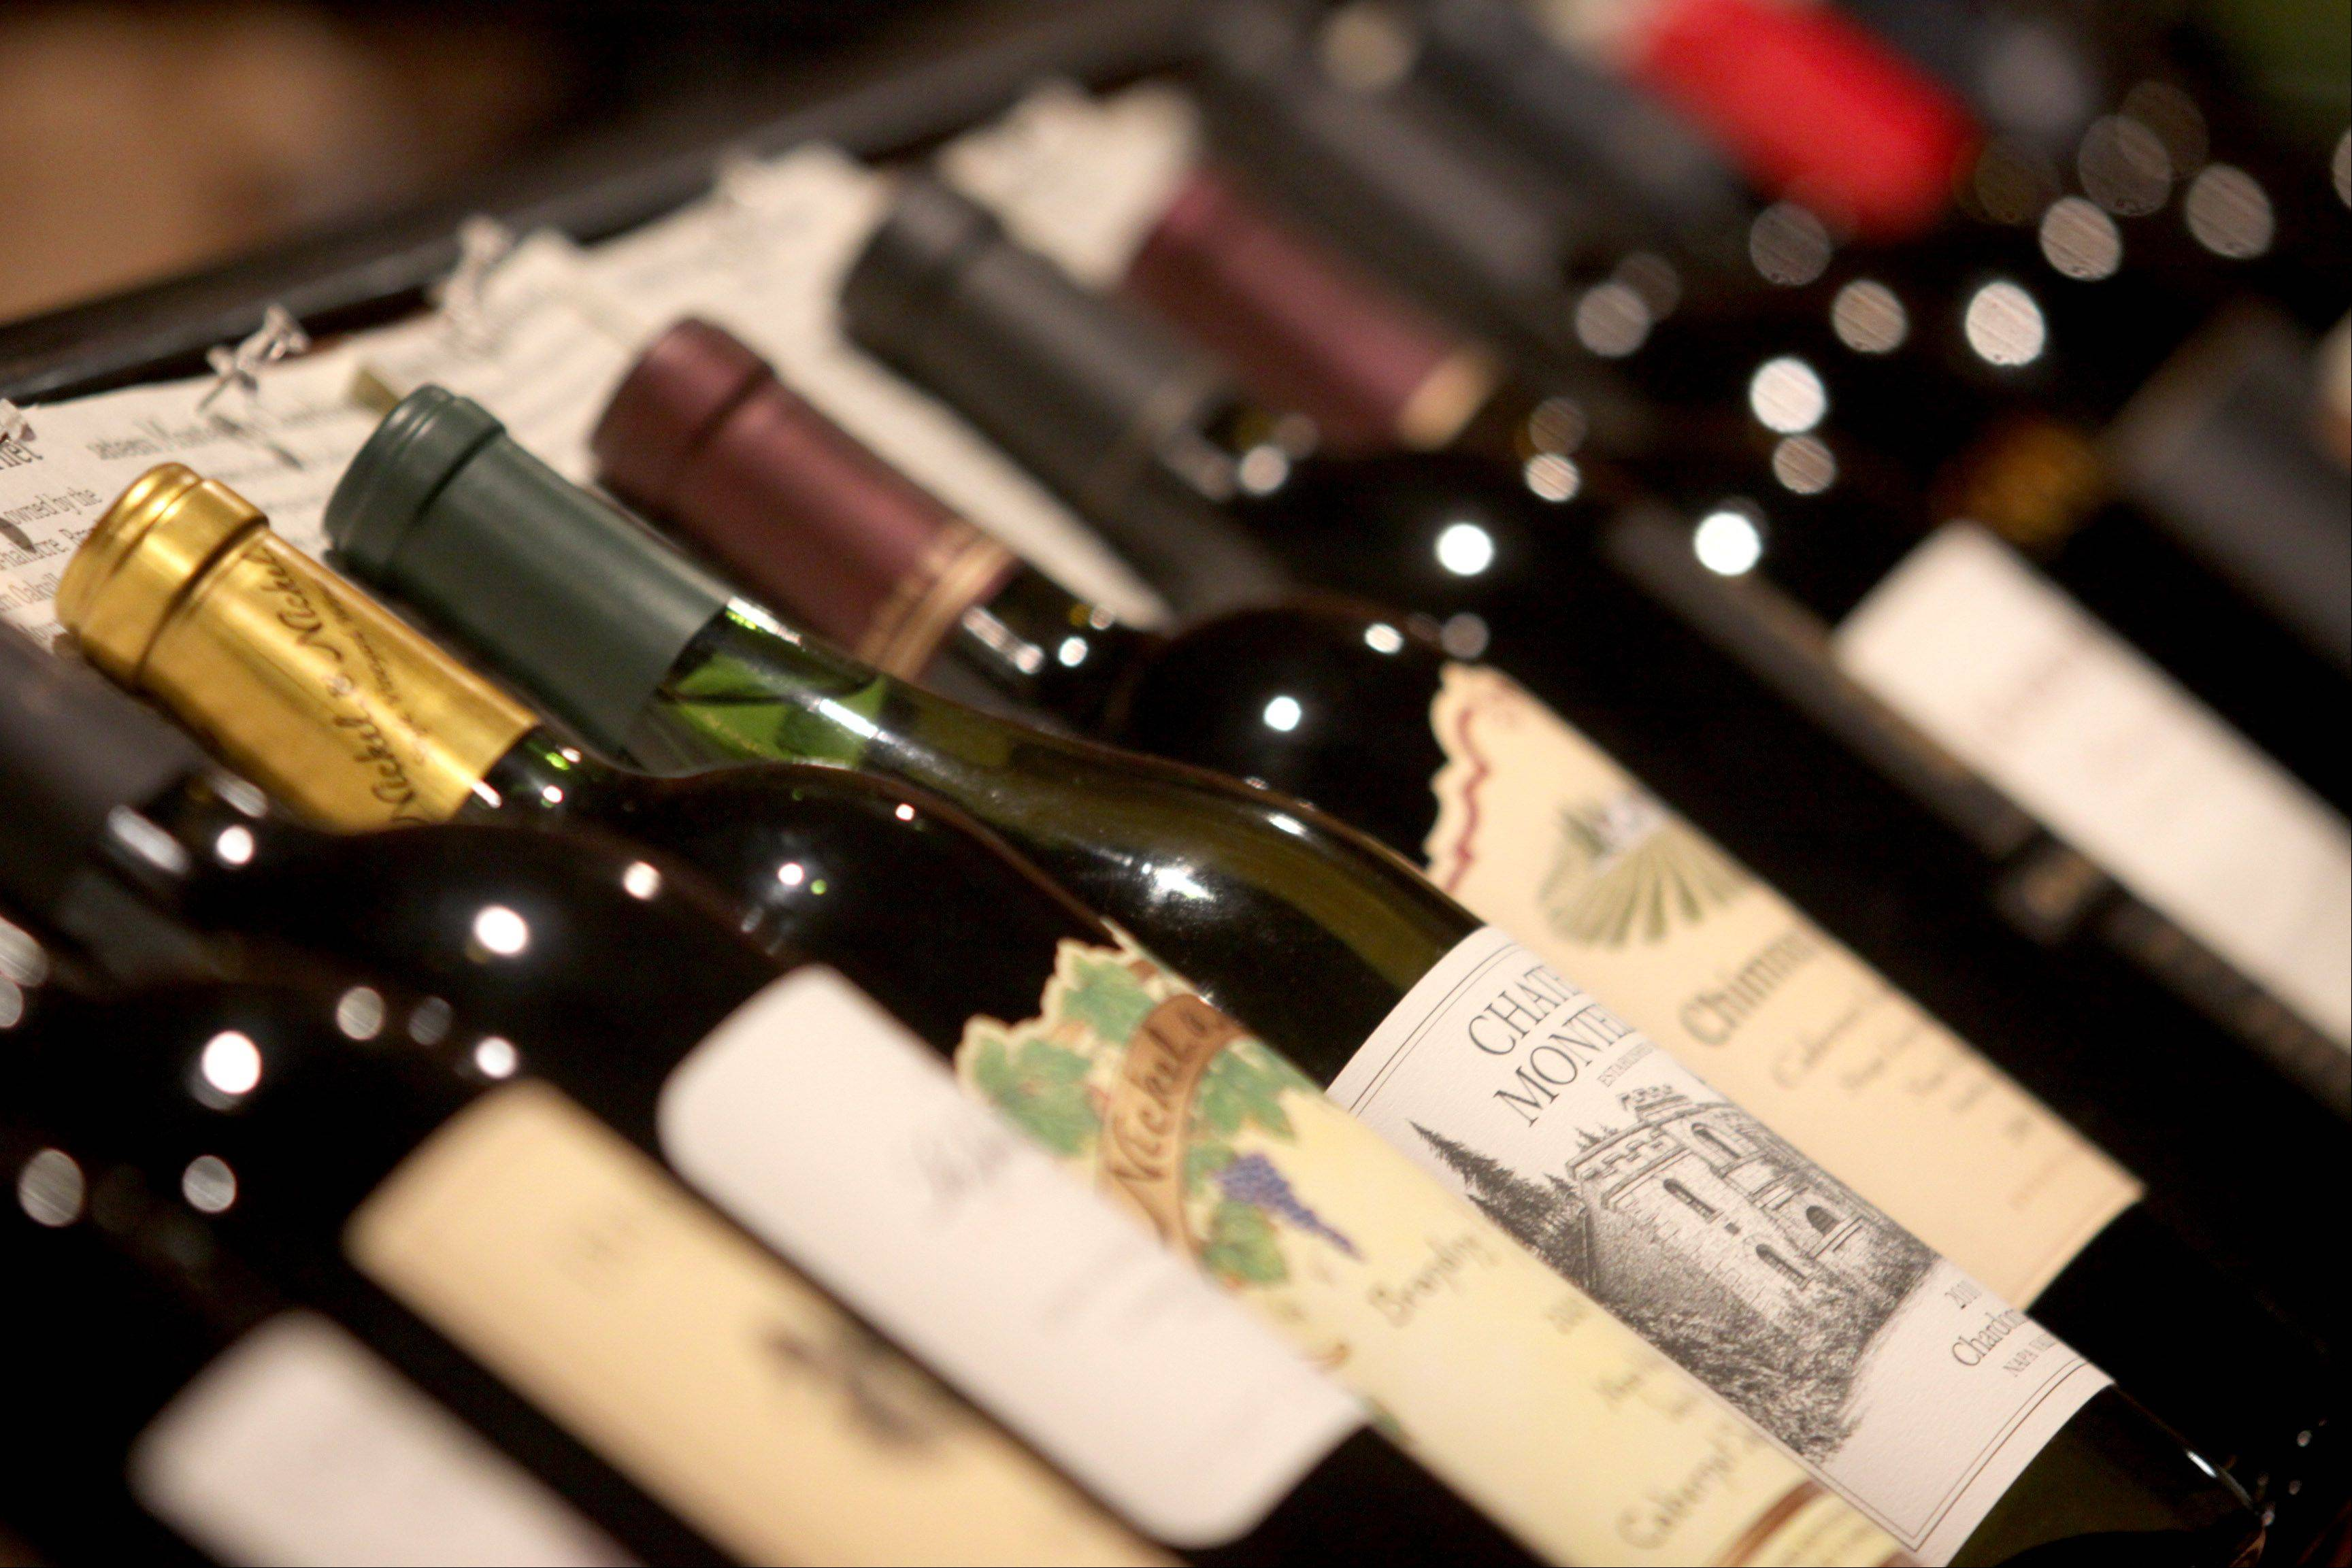 A large selection of wine awaits patrons at the Tuscan Market Wine Bar.